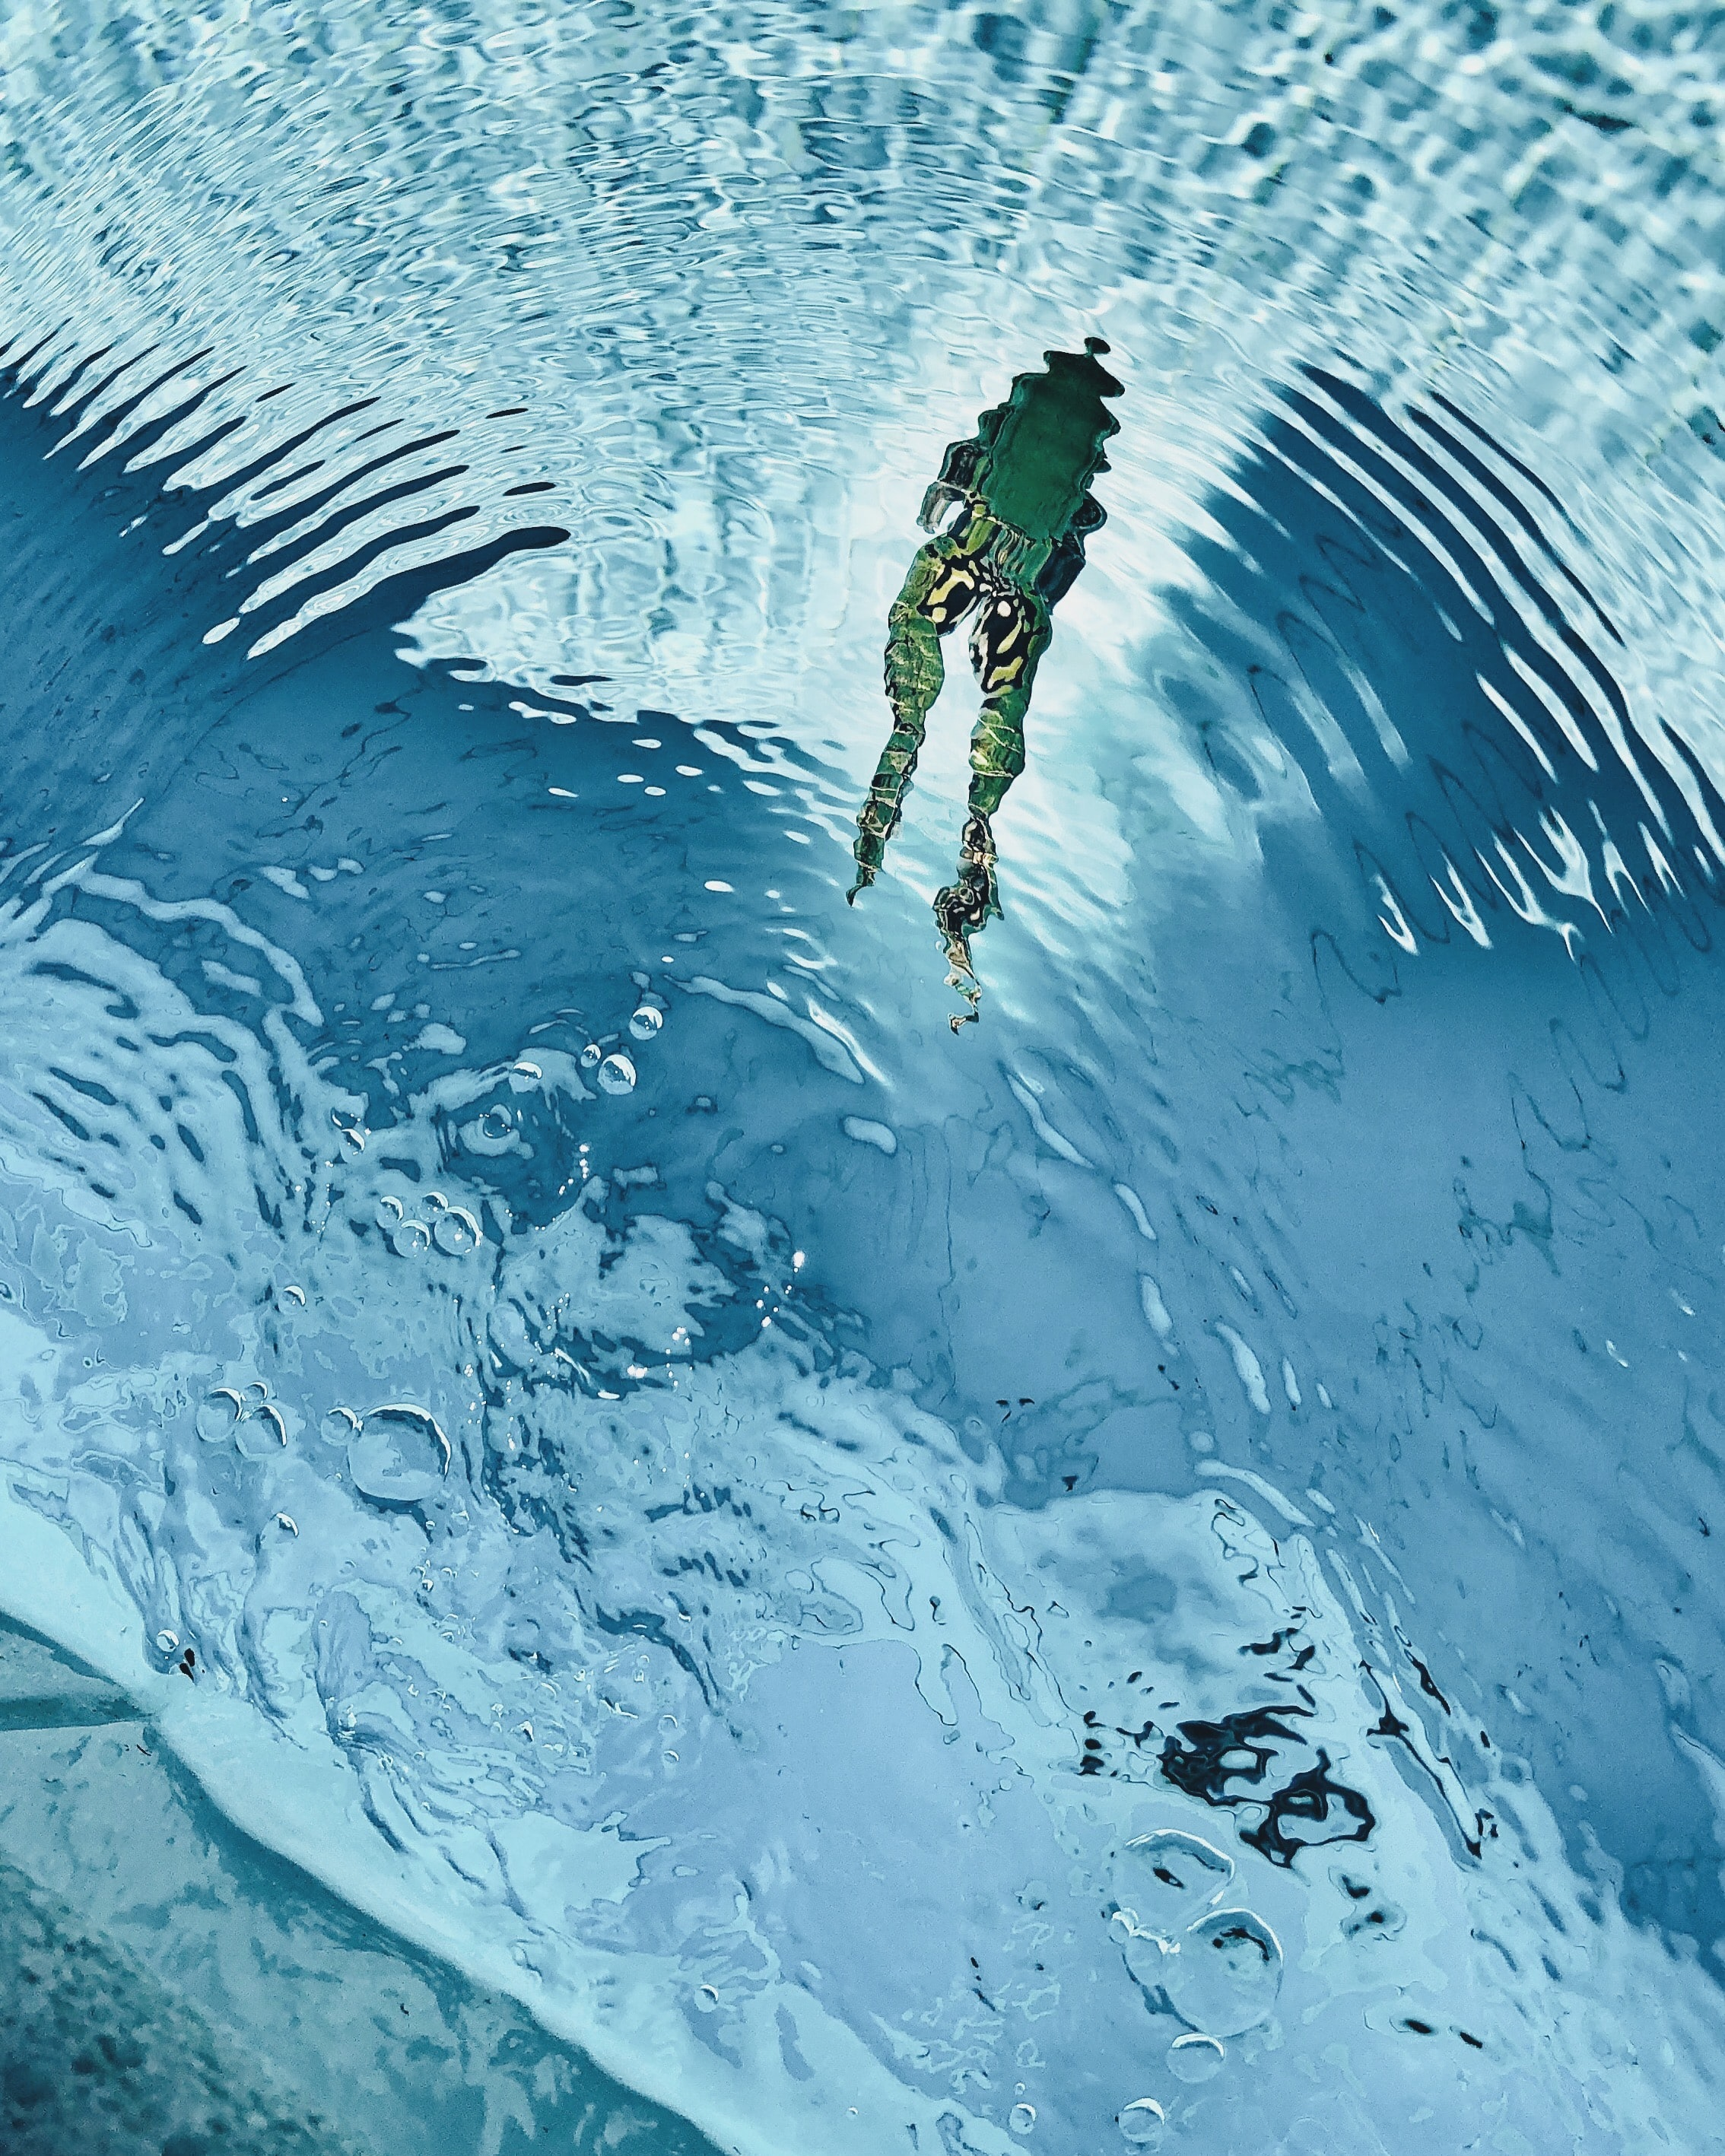 high-angle photography of green frog swimming on clear water